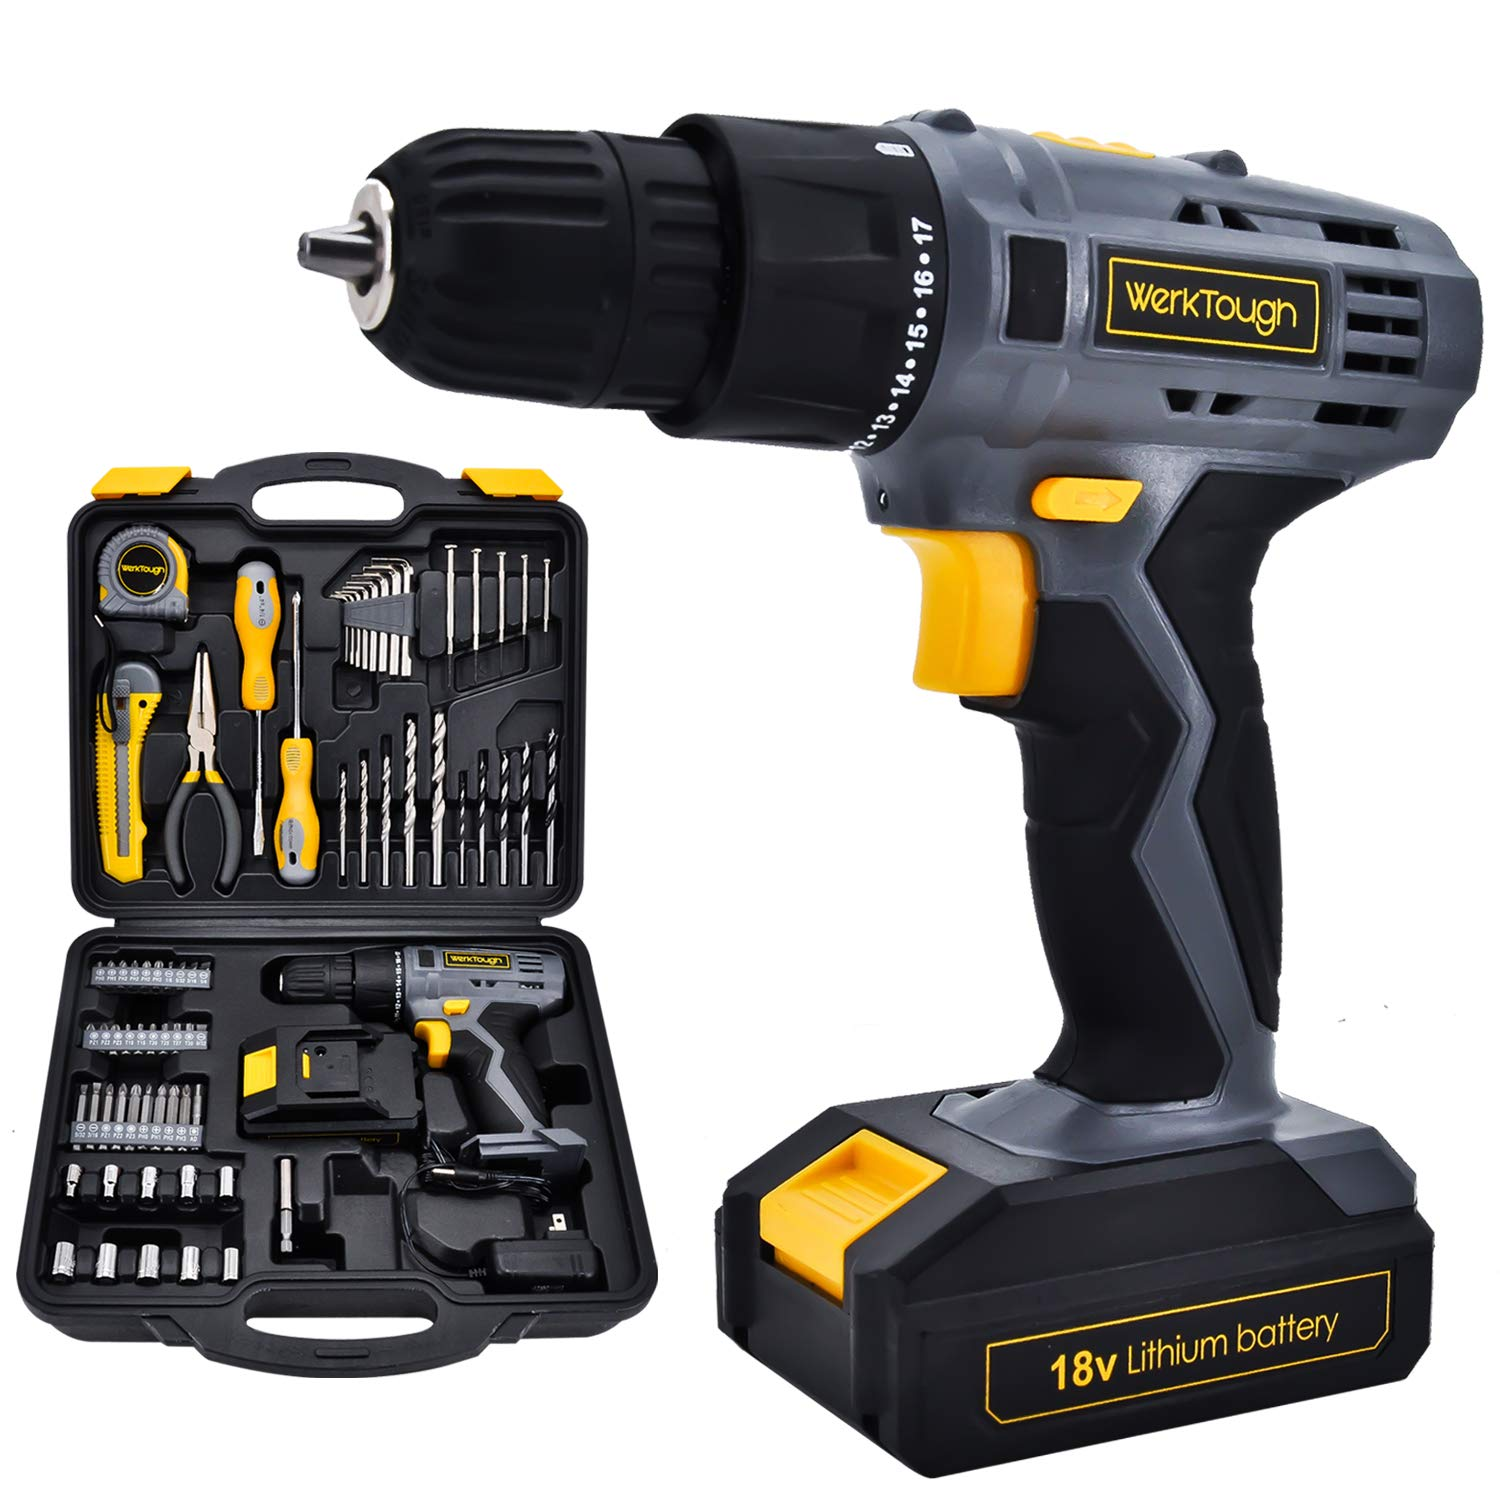 Power Tools Combo Kit With 18V Cordless Drill 77 Accessories Home Repair Kit Tool Set Cordless Project Kit